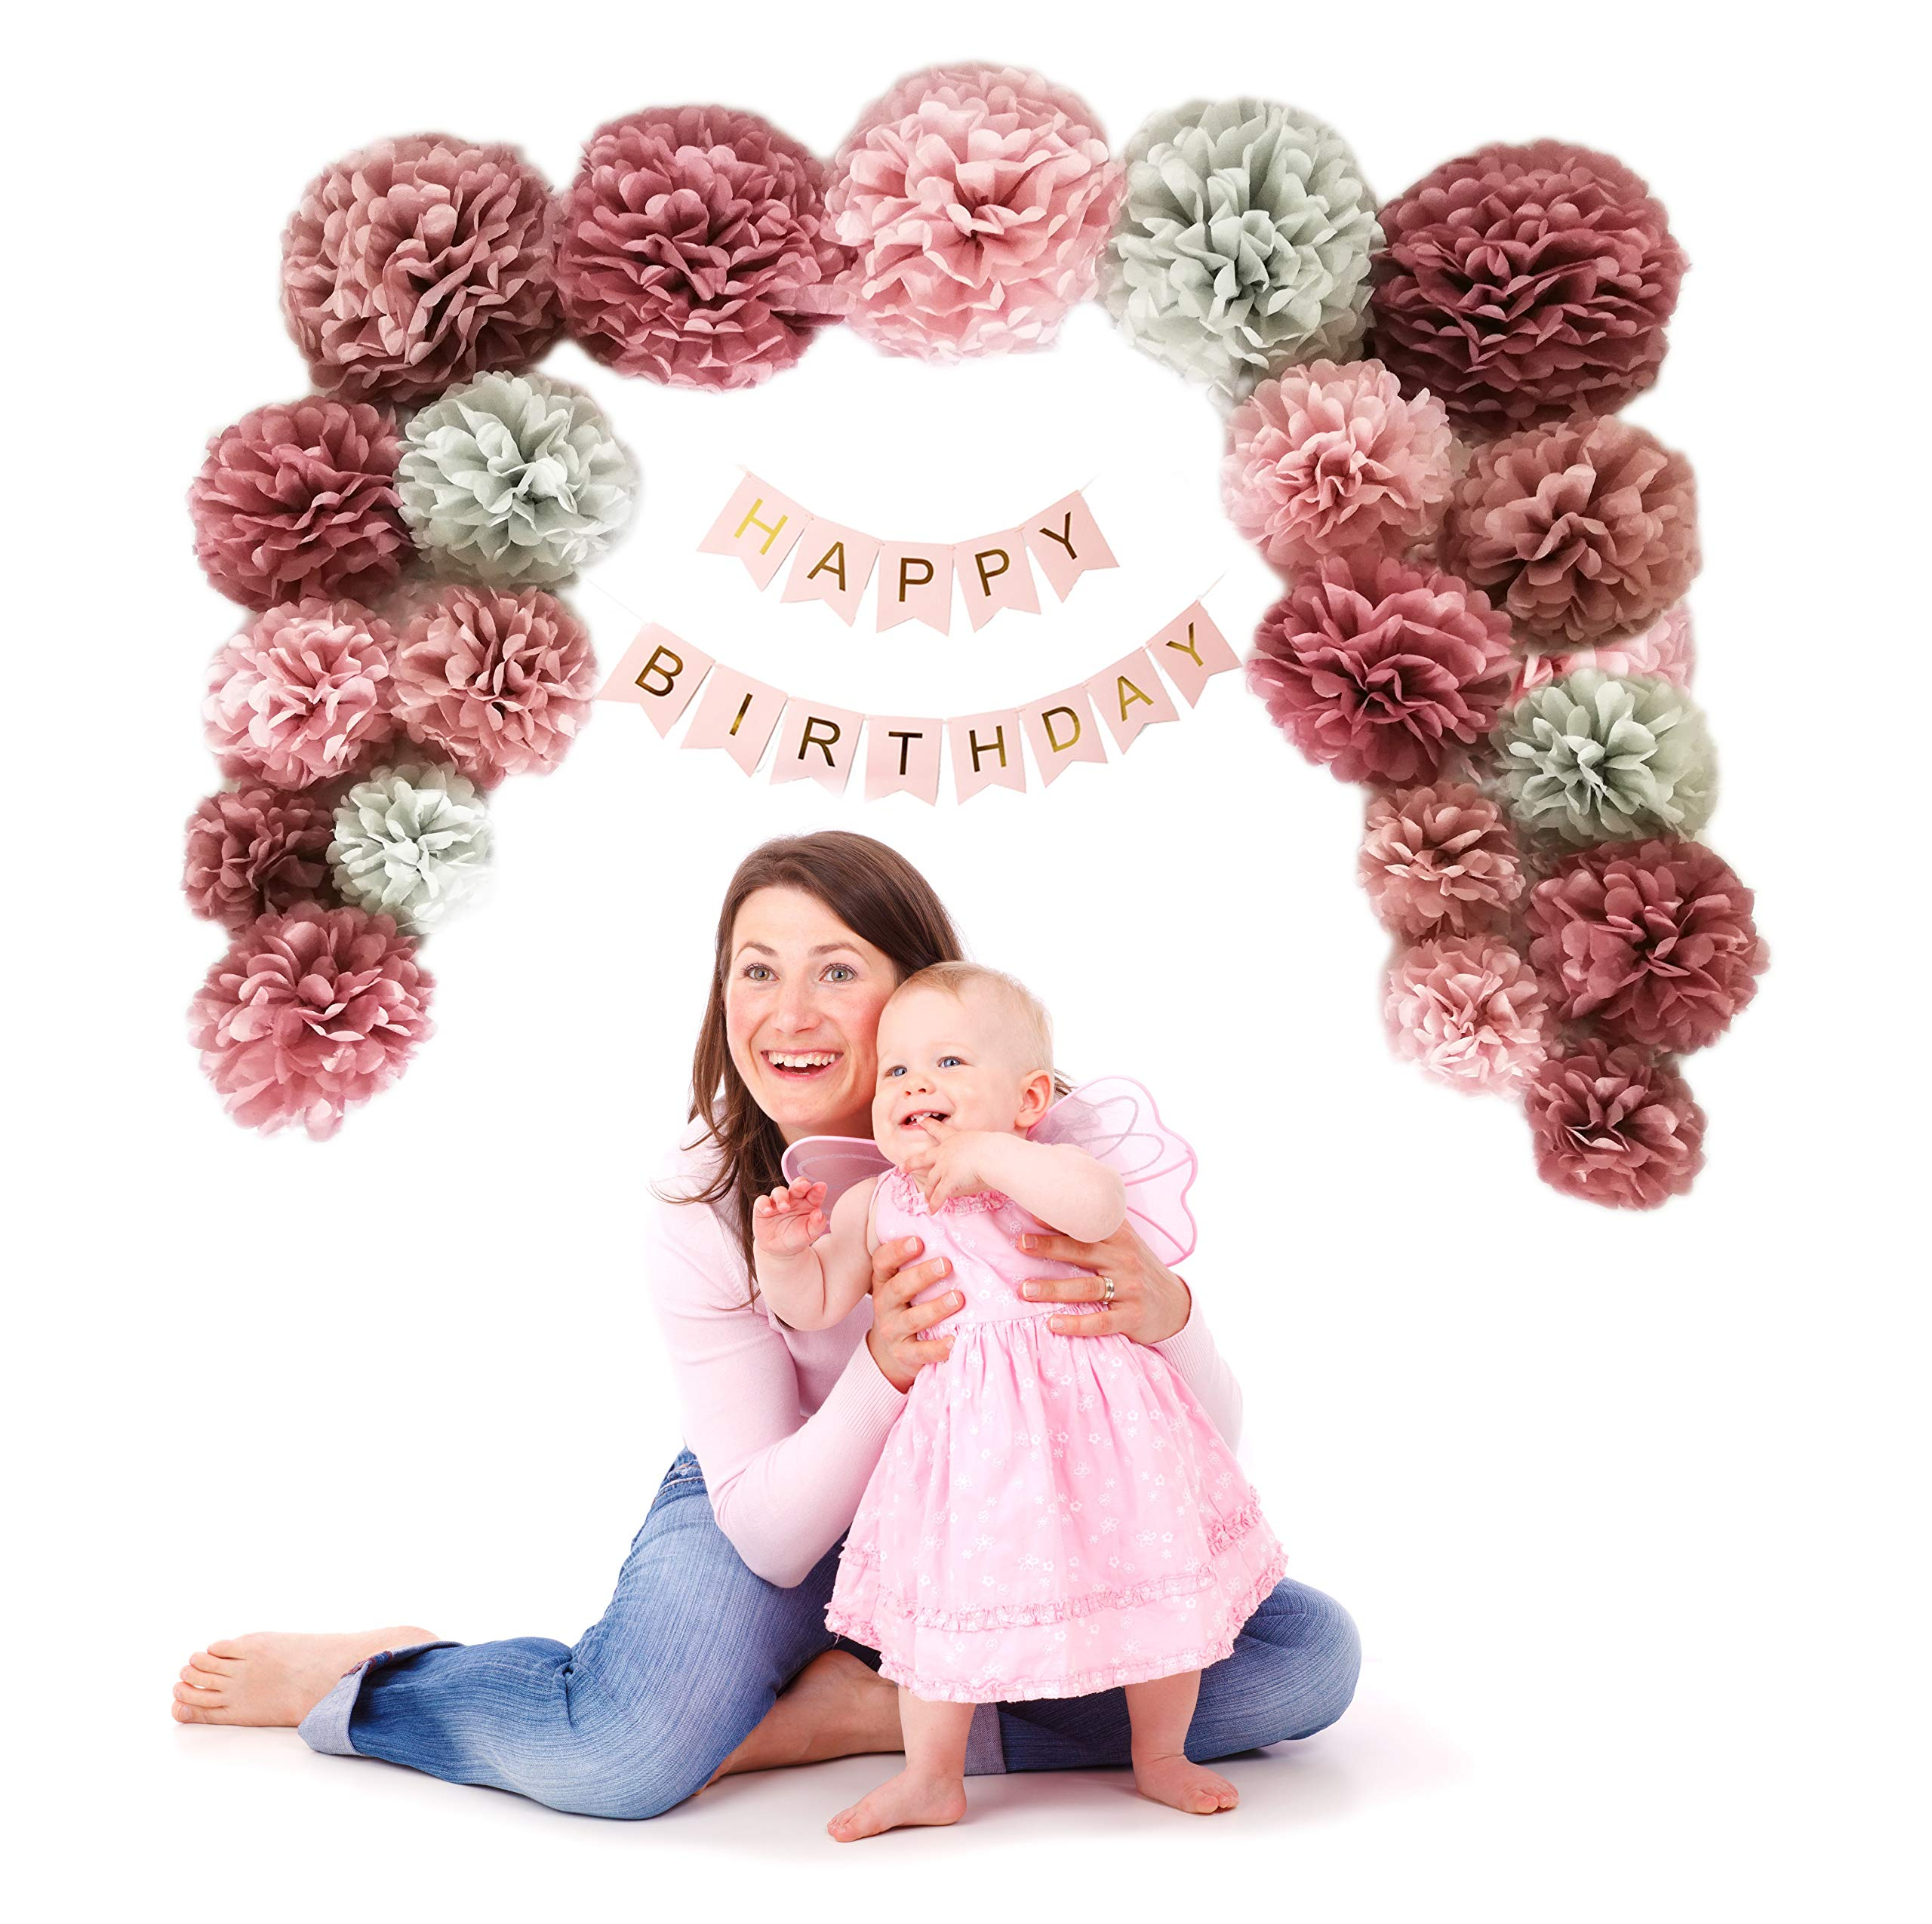 VINANT 20 PCS Tissue Paper Pom Poms - Paper Flower - Party Decoration for Birthday Party - Baby Shower - Bridal Shower - Wedding - Bachelorette - Dusty Rose, Mauve, Blush Pink, Grey - 14'', 10'', 8'', 6'' by VINANT (Image #7)